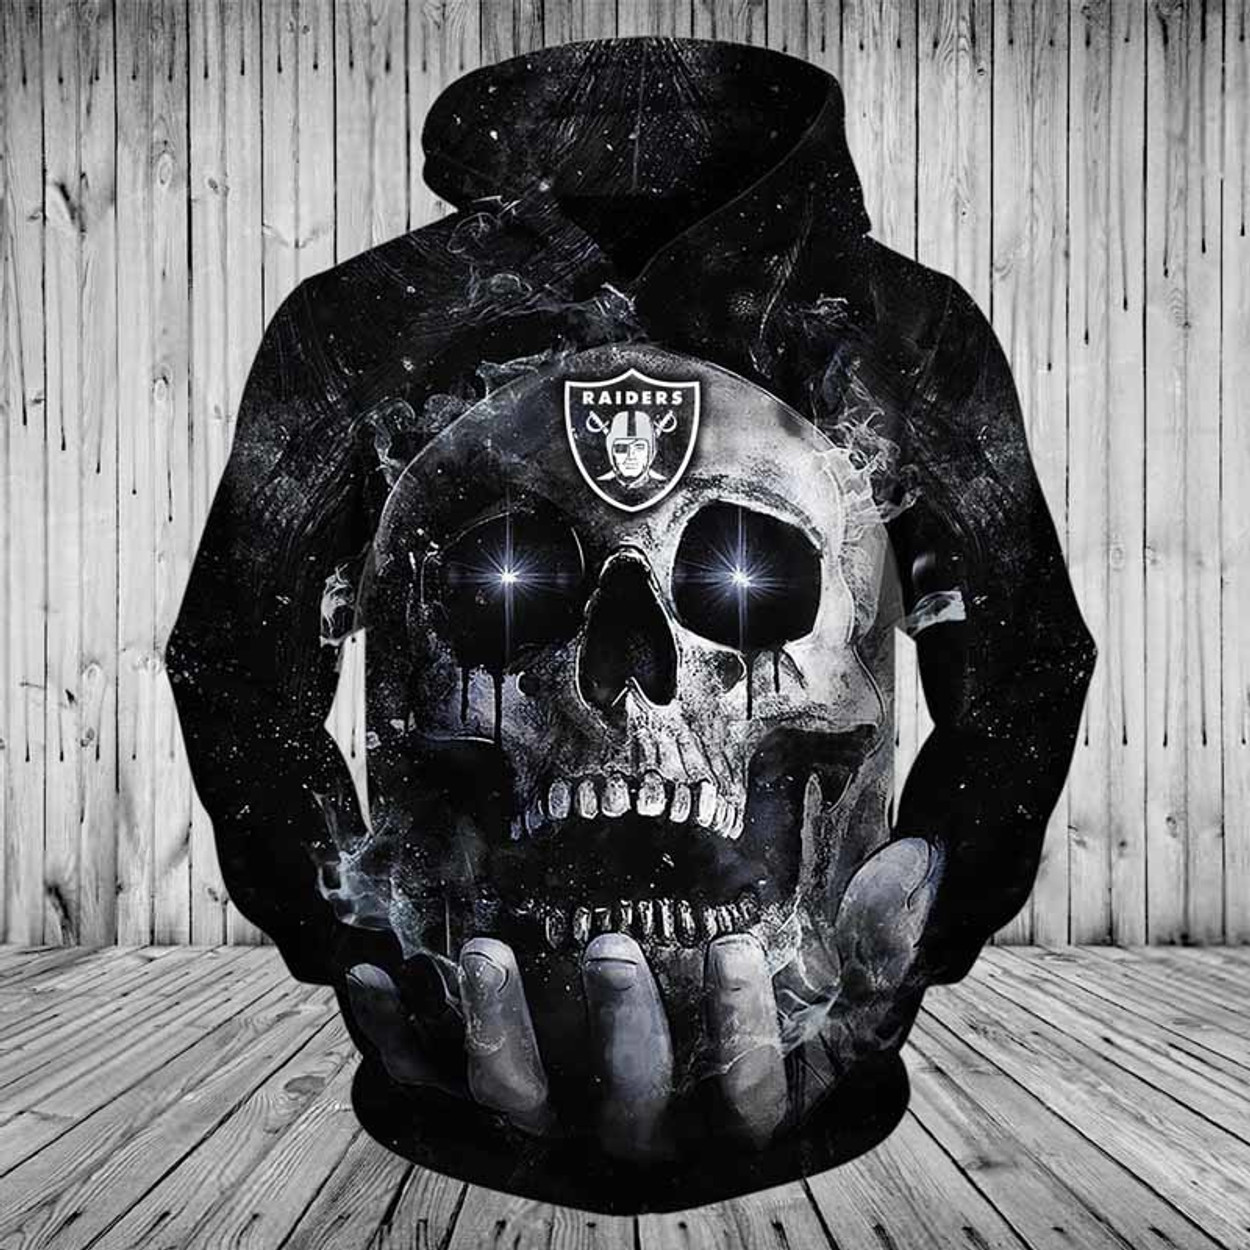 7806b9025   (OFFICIAL-N.F.L.NEW-OAKLAND-RAIDERS-TEAM-PULLOVER-NEON-SKULL-HOODIES CUSTOM-3D-NEON-GRAPHIC-PRINTED-DOUBLE-SIDED-ALL-OVER-OFFICIAL-RAIDERS-LOGOS  ...